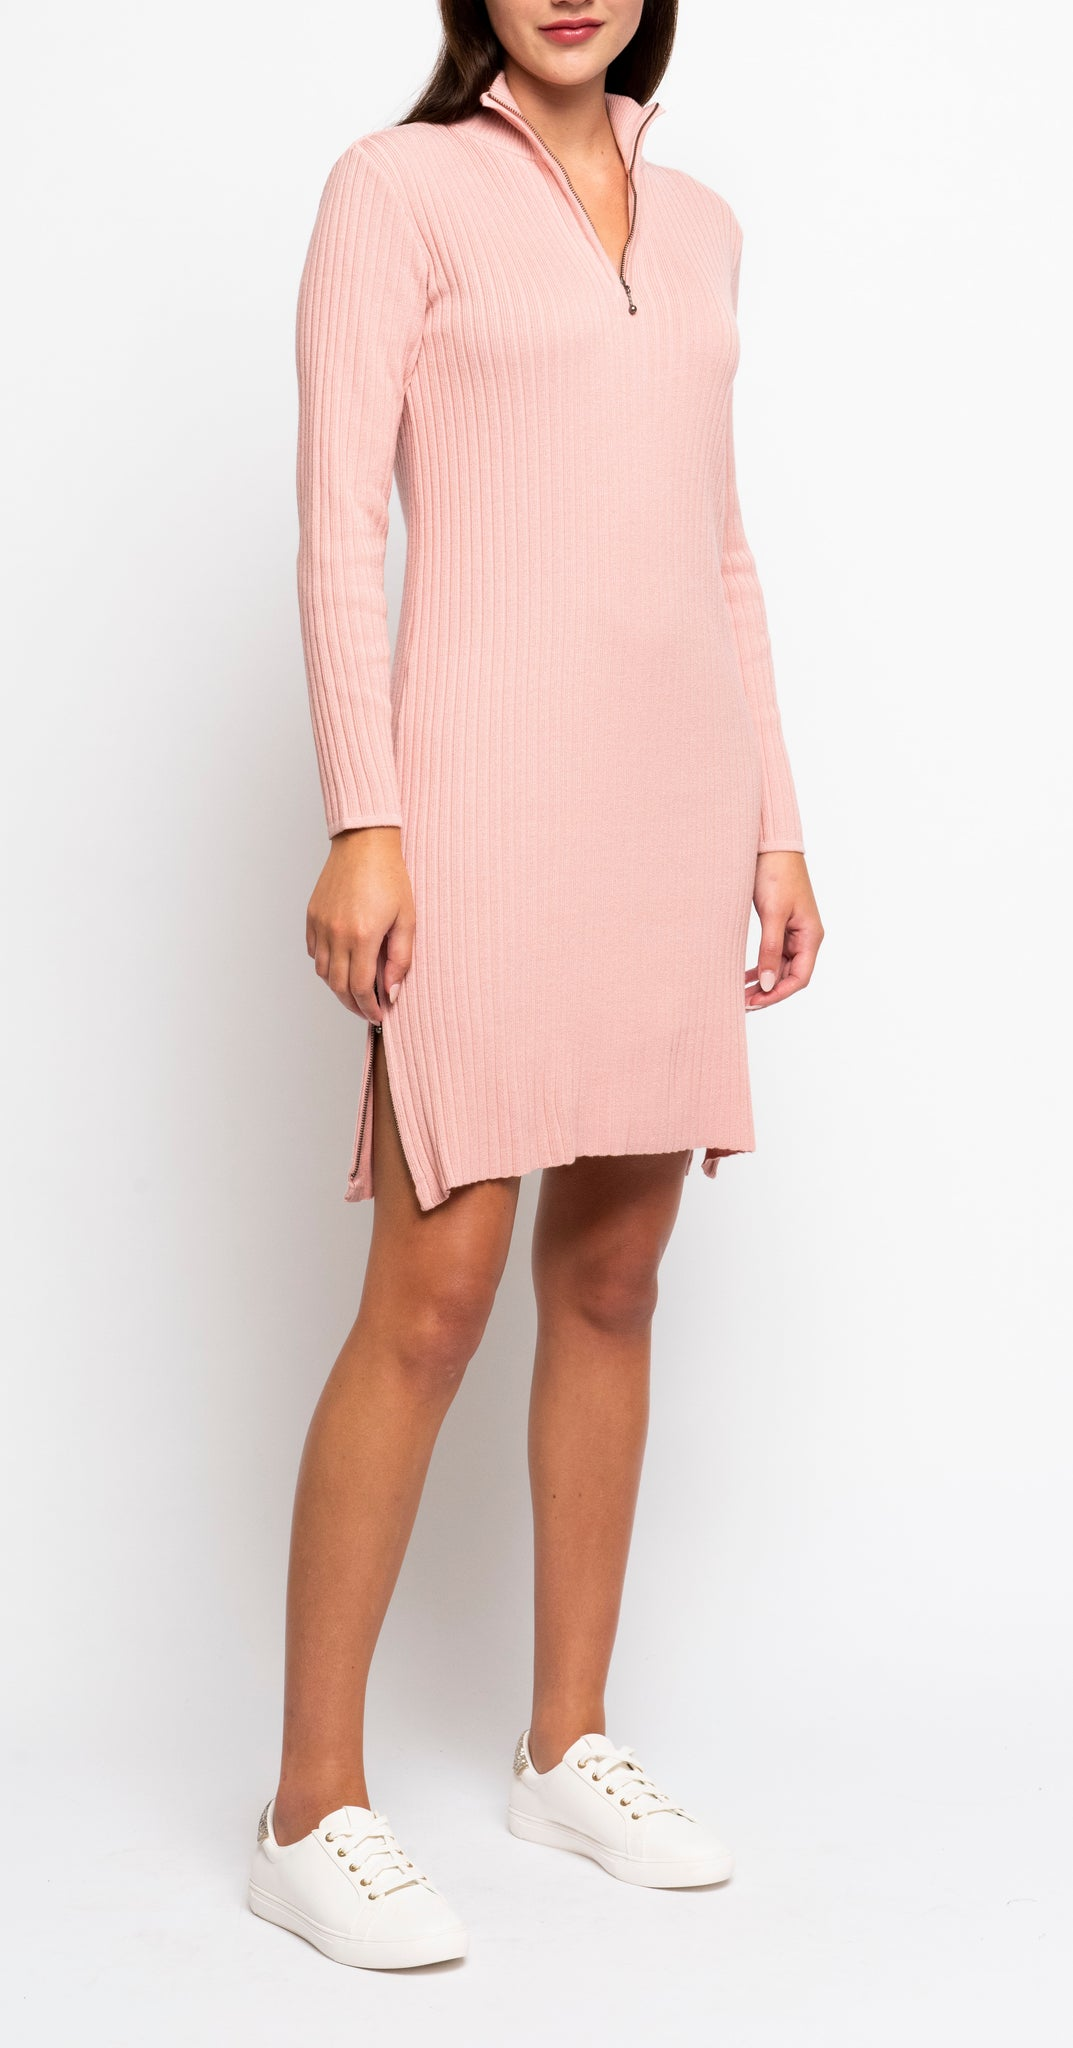 Stefanie Zip-Up Mock Neck, Vertical Rib Knit Tunic; Blush